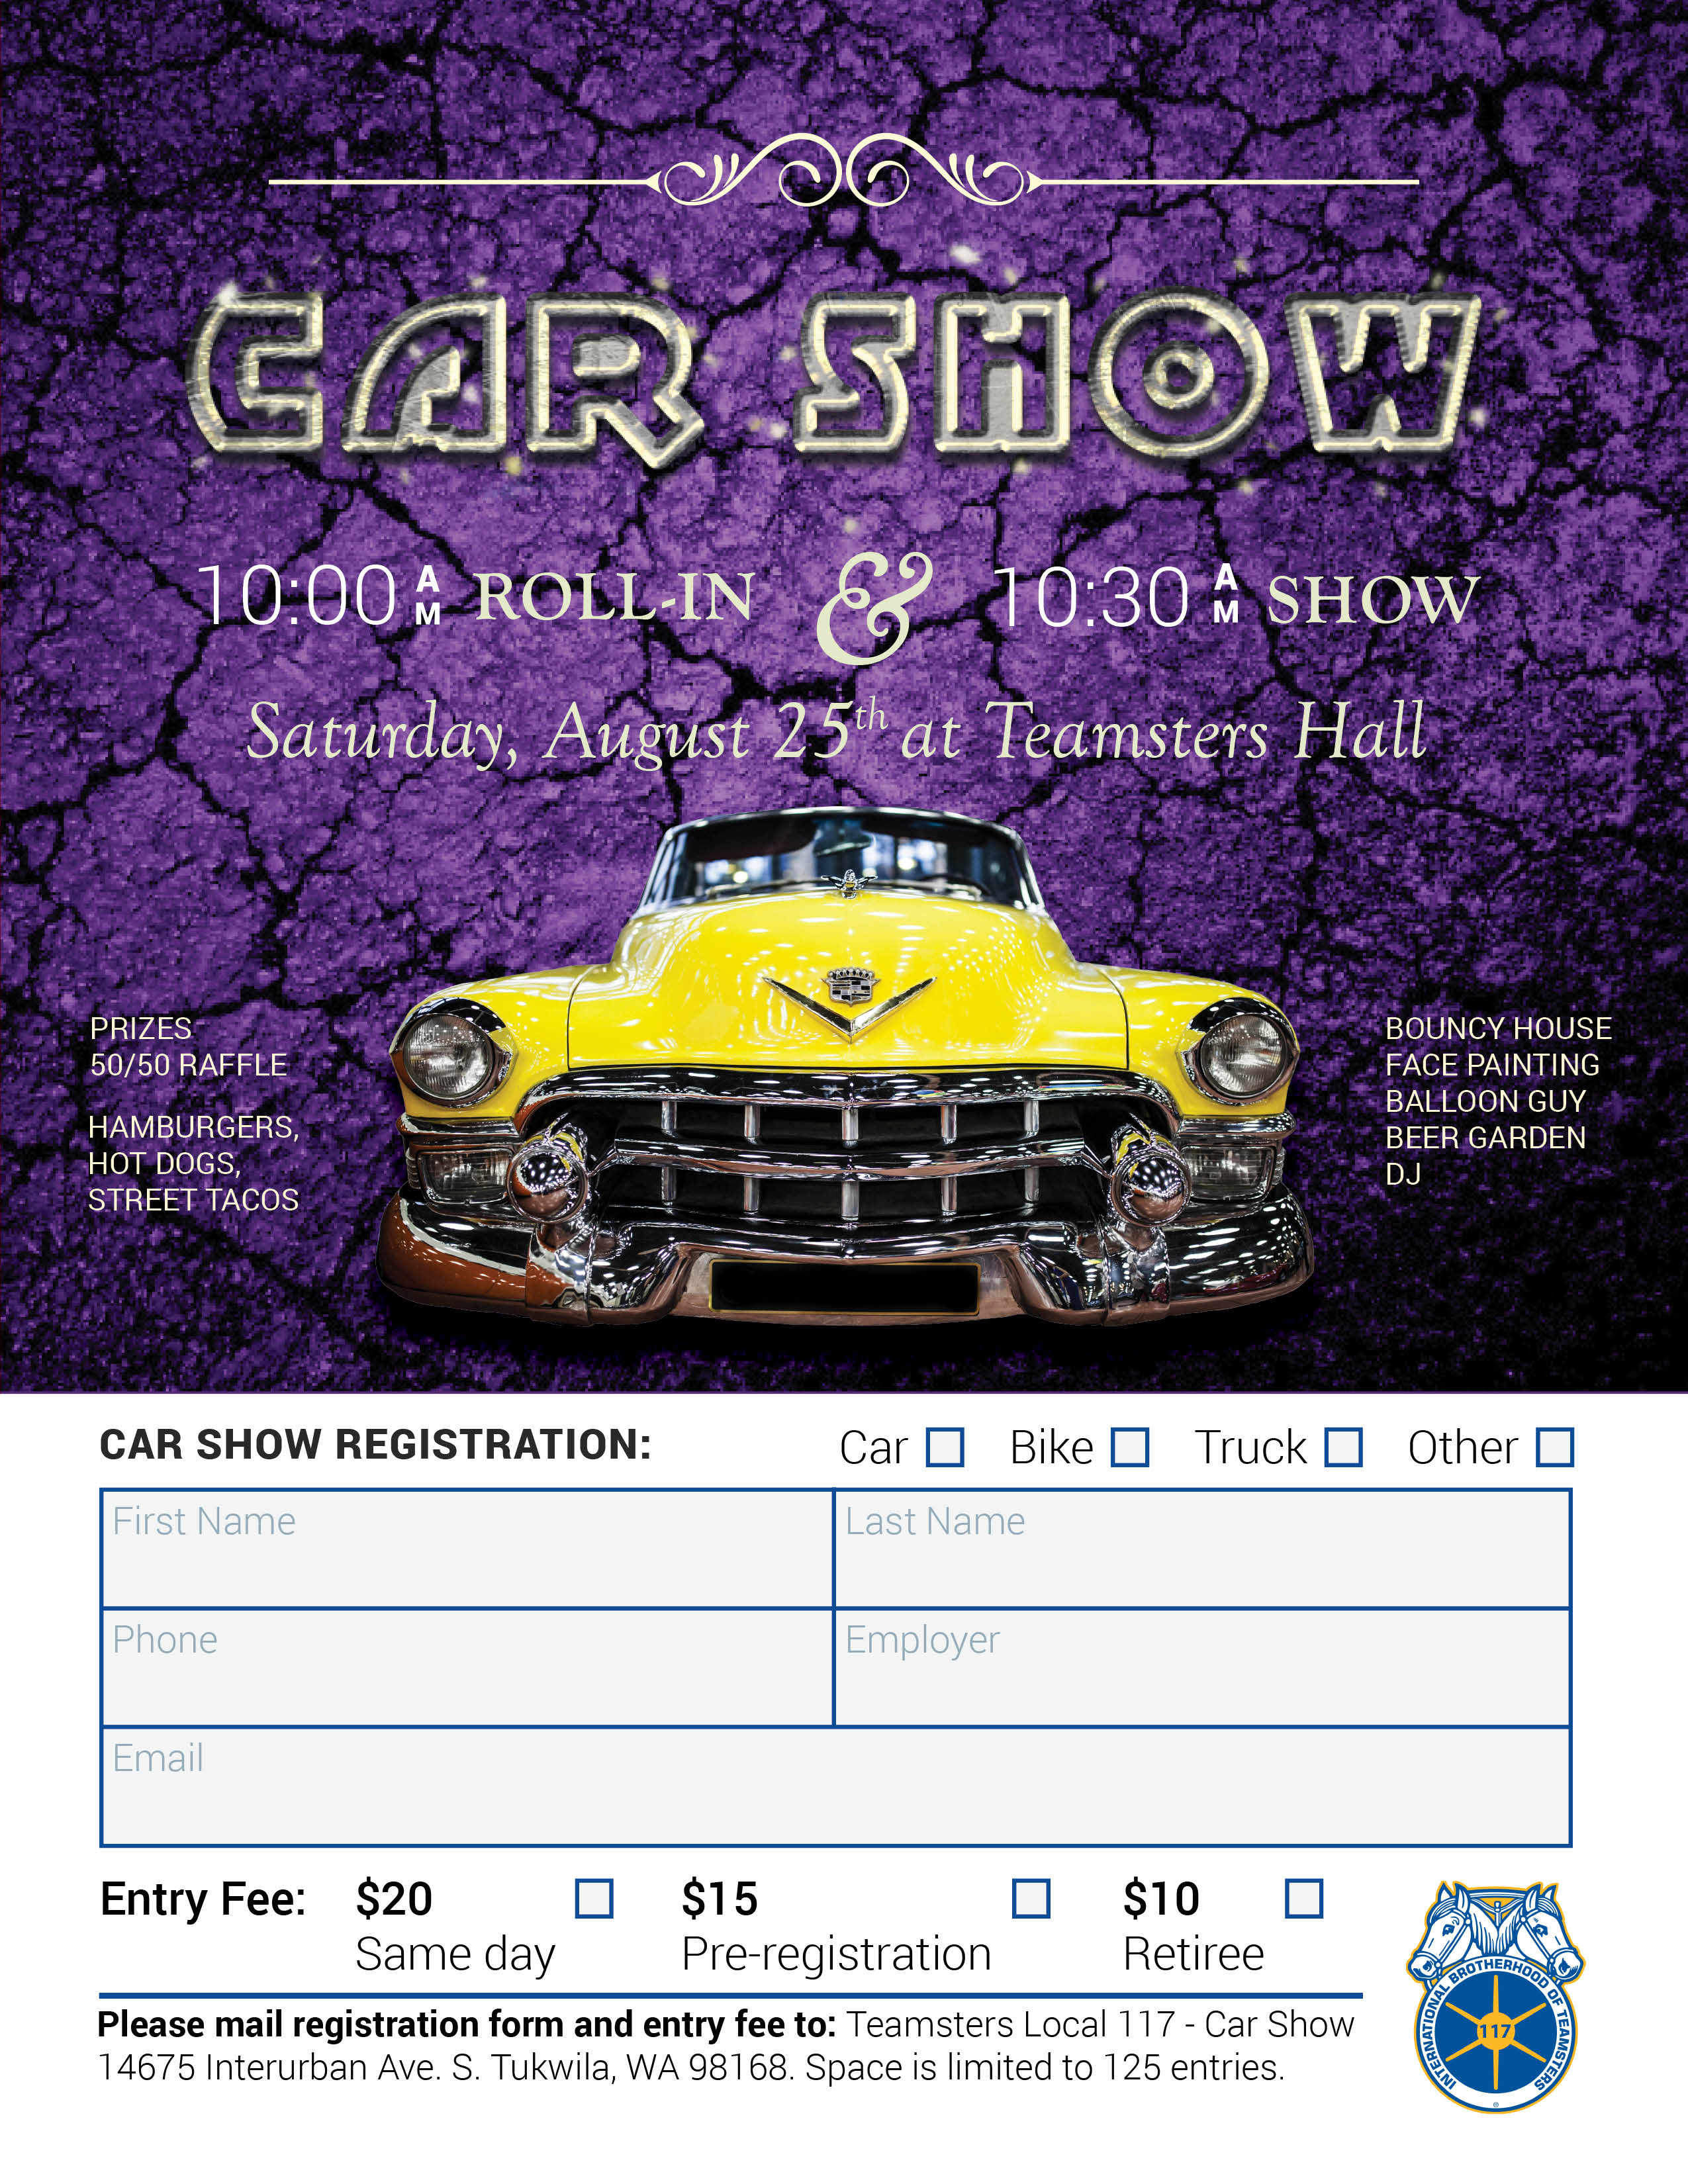 Teamsters car show 2018 teamsters 117 the event will take place at the teamsters union in tukwila 14675 interurban ave s reach out to your union representative for a form to enter your car thecheapjerseys Image collections